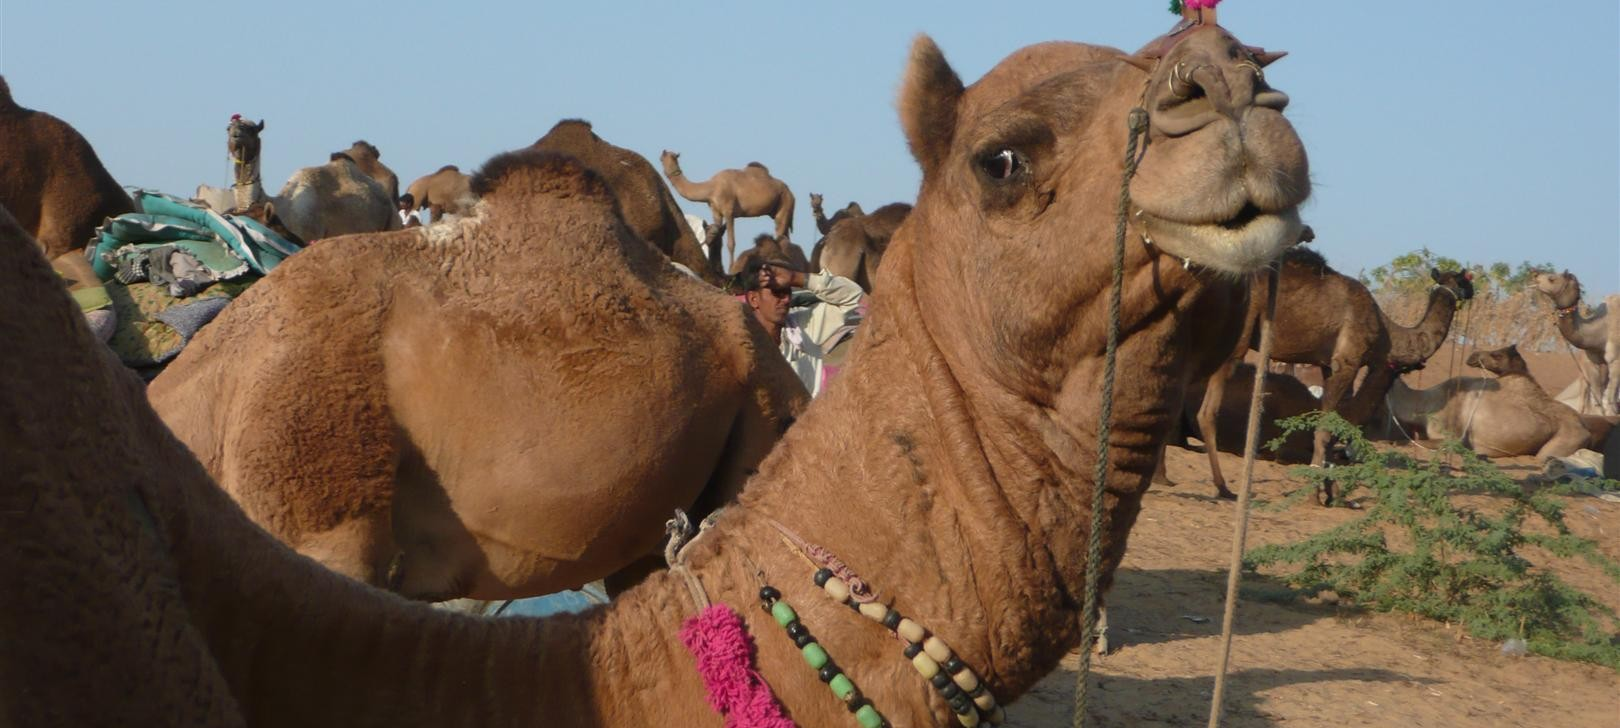 camels closeup (photo by Dick Sakahara)